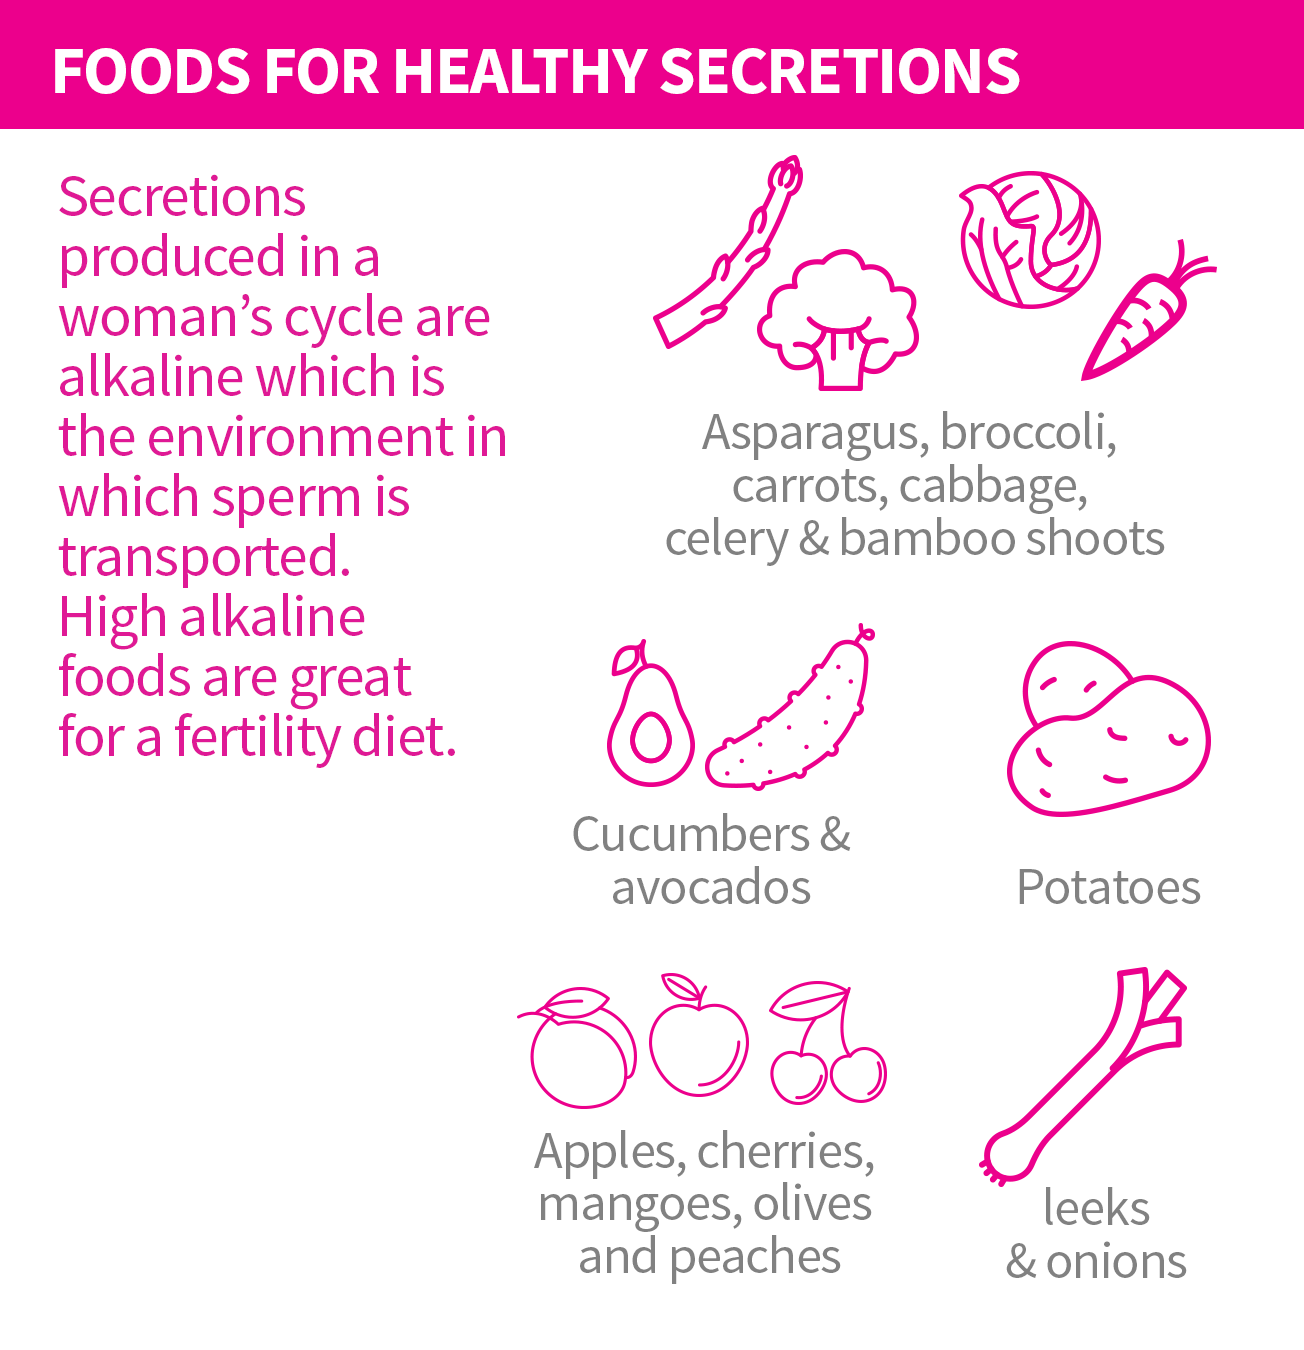 Foods for healthy secretions